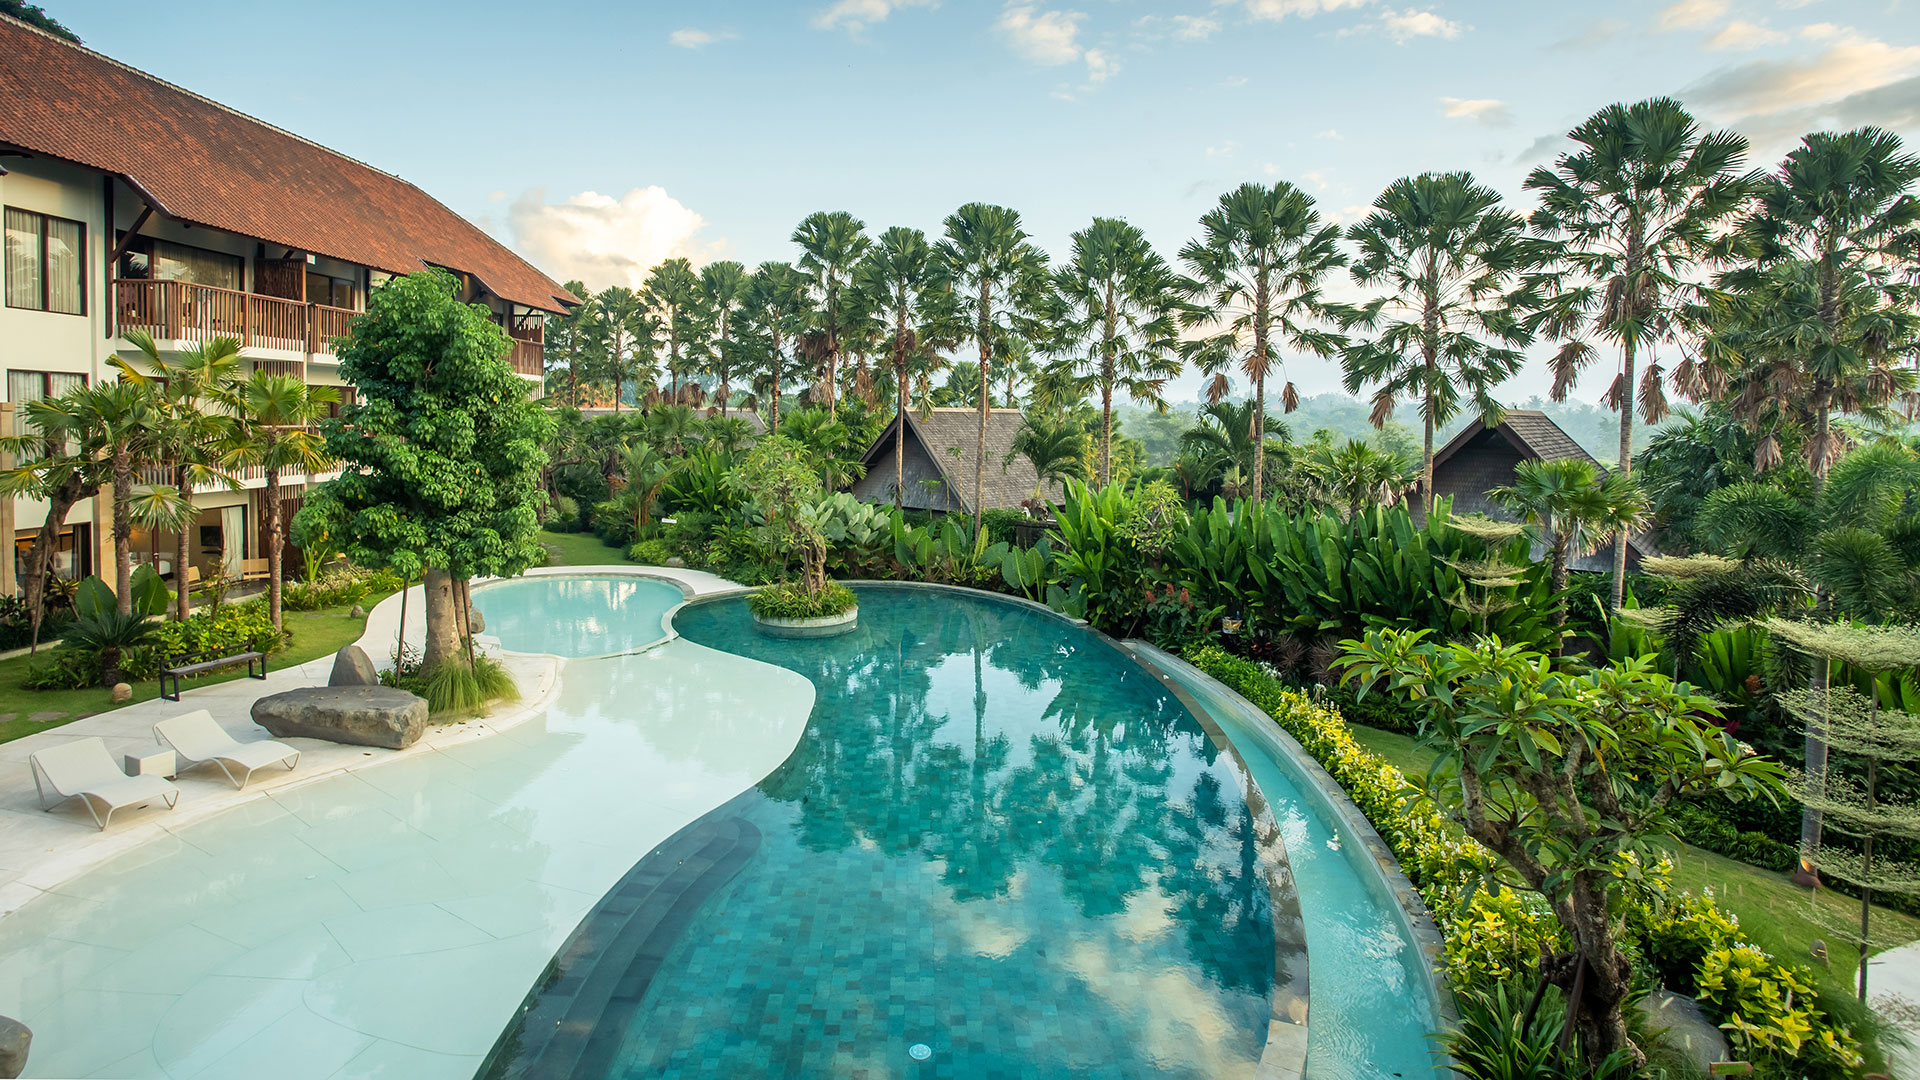 Sanctoo is a resort that owned by Bali Zoo that consist of villas and brand new suites located just beside the zoo itself. The main building has 26 unit suites with pool and a lush Ubud jungle